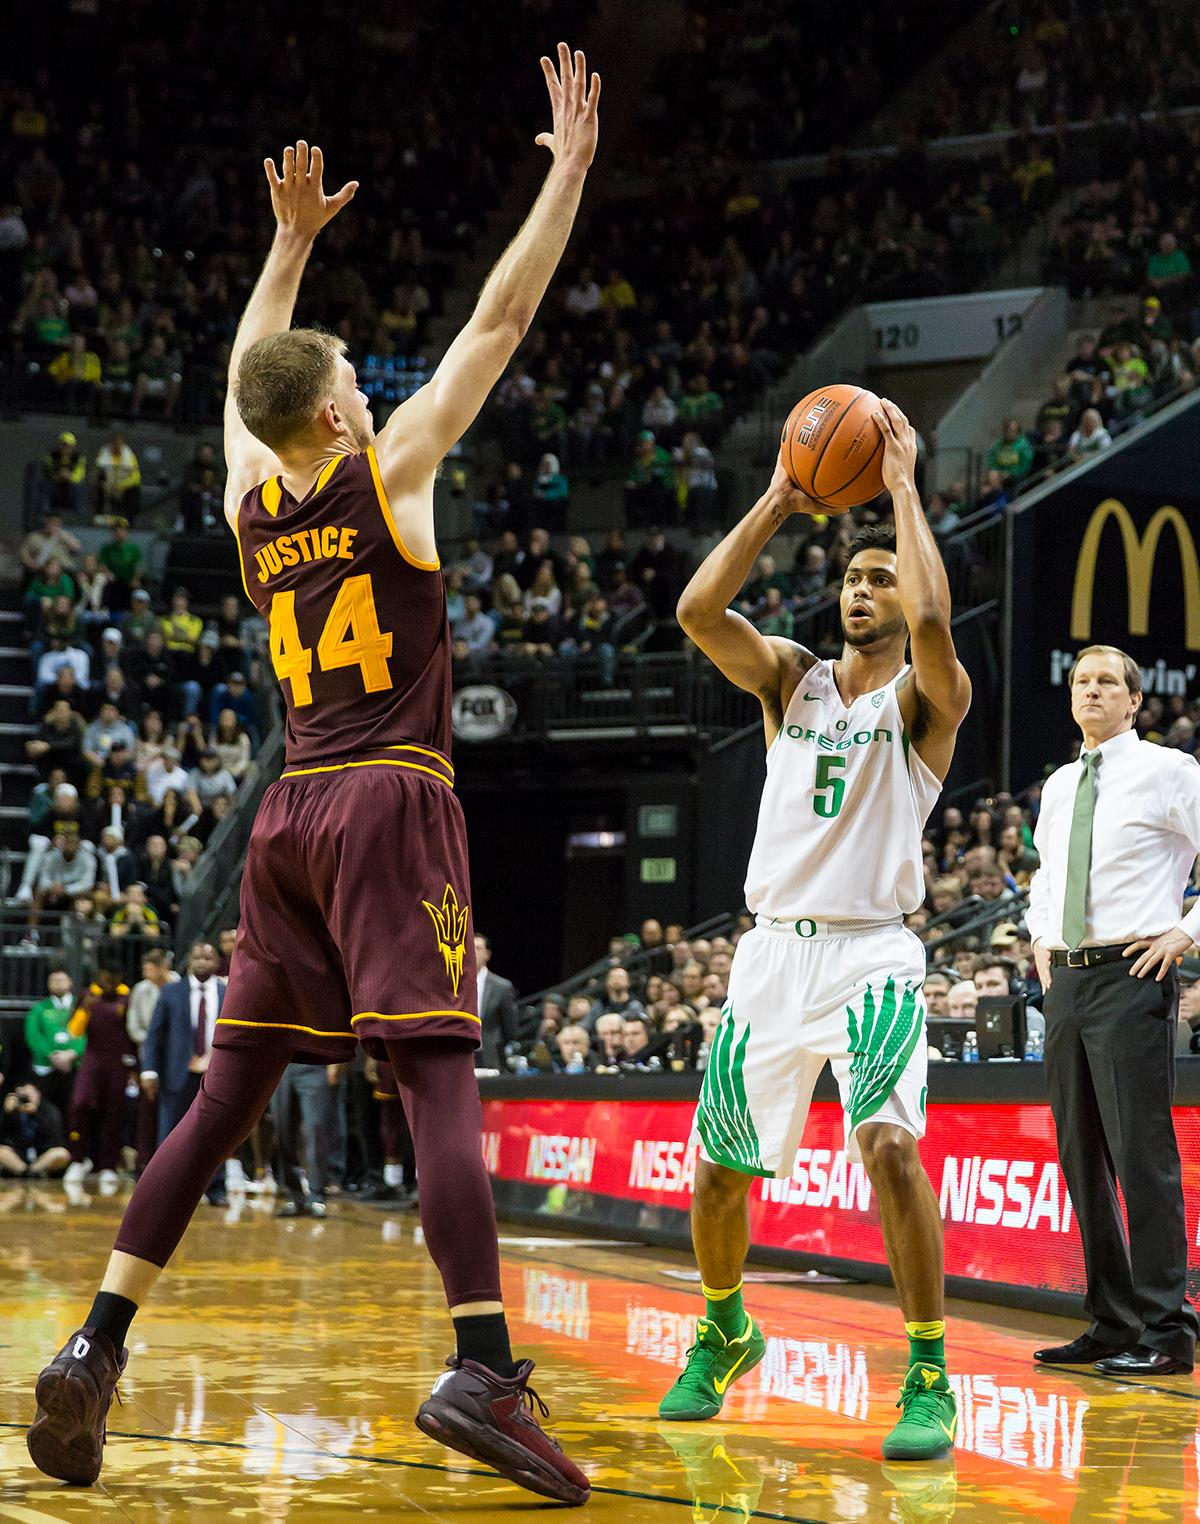 Oregon guard Tyler Dorsey (#5) looks past Arizona State guard Kodi Justice (#44) for an open teammate. The Oregon Ducks defeated the Arizona State Sun Devils 71 to 70. Photo by Ben Lonergan, Oregon News Lab